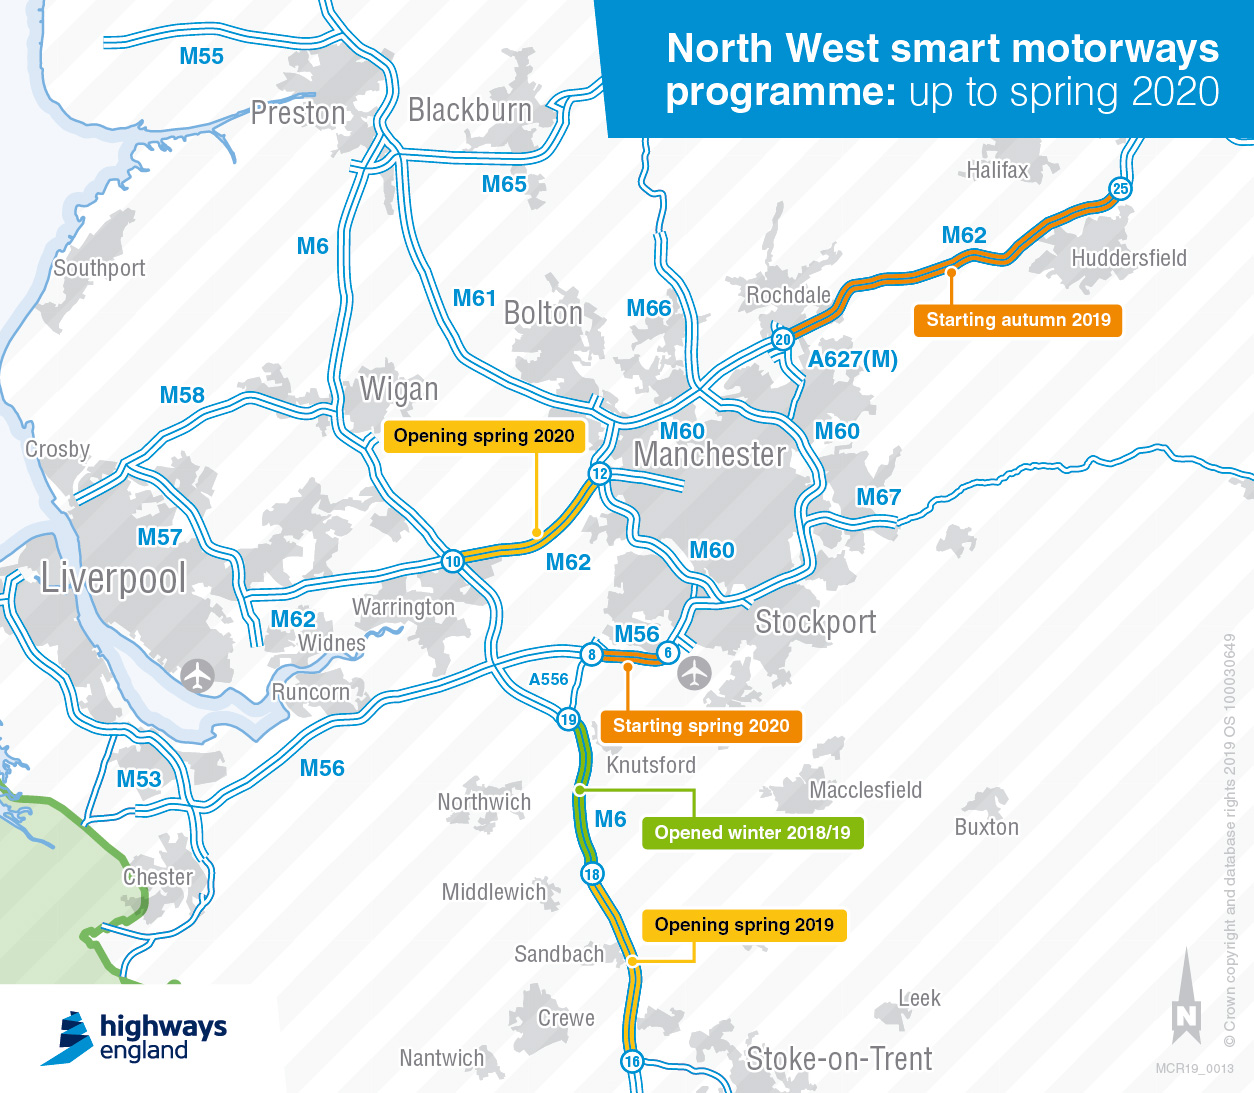 Map Of Nw England.North West Smart Motorways Improvements And Major Road Projects